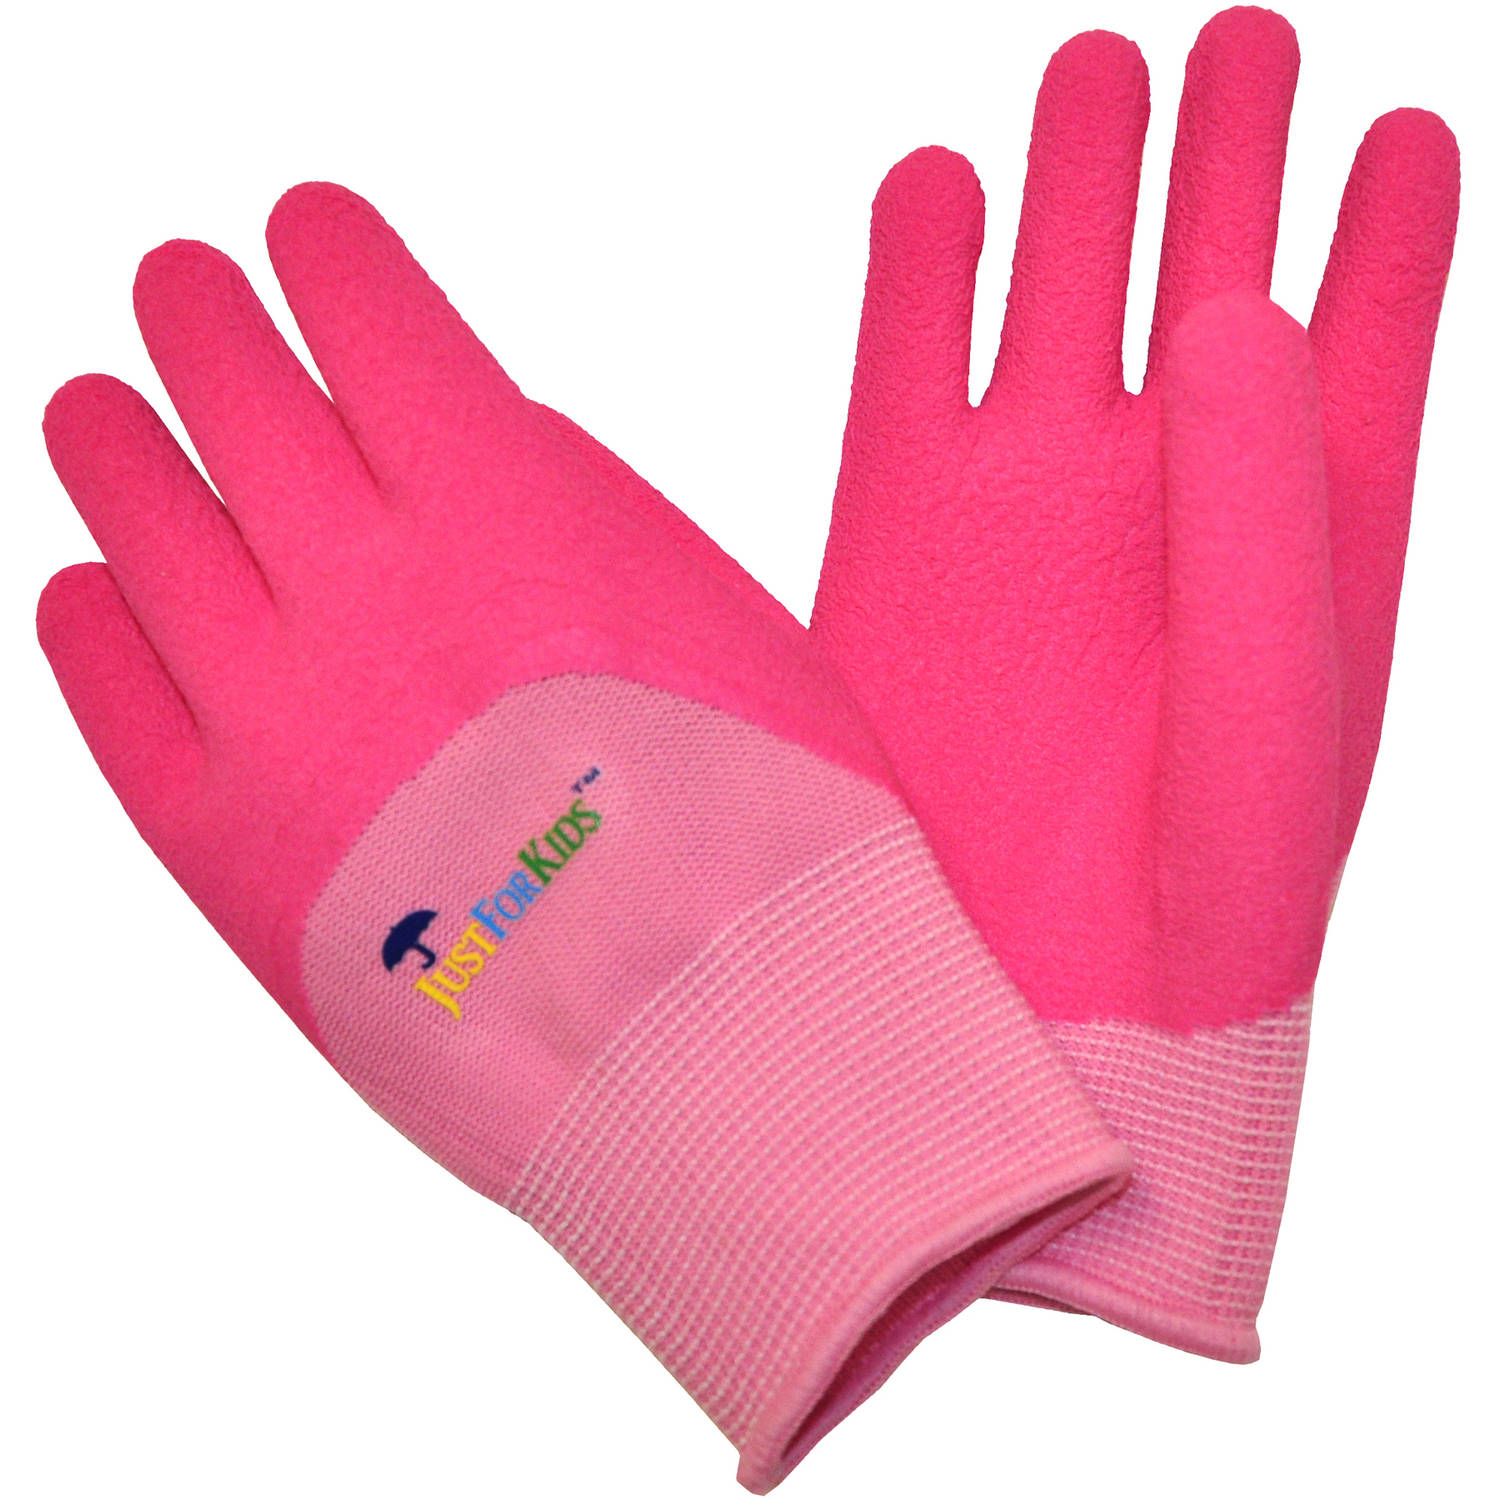 G & F JustForKids All-Purpose Gloves with Premium Micro-foam Texture Coating, Pink